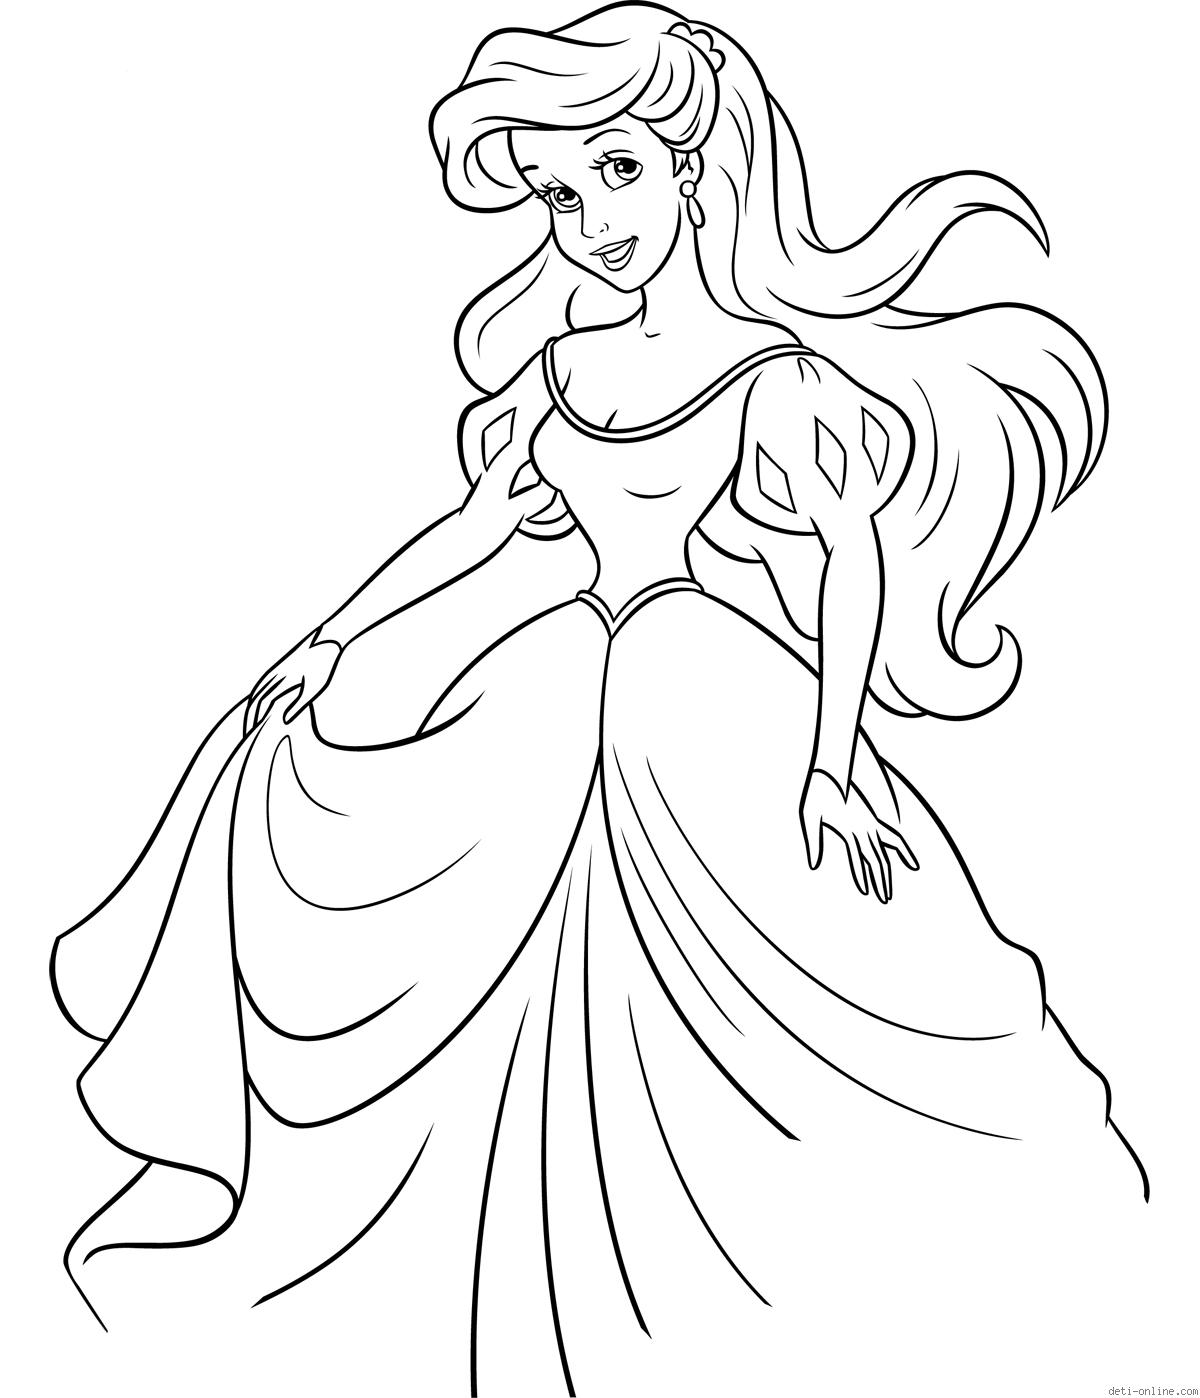 ariel little mermaid coloring sheets ariel the little mermaid coloring pages for girls to print ariel coloring little mermaid sheets